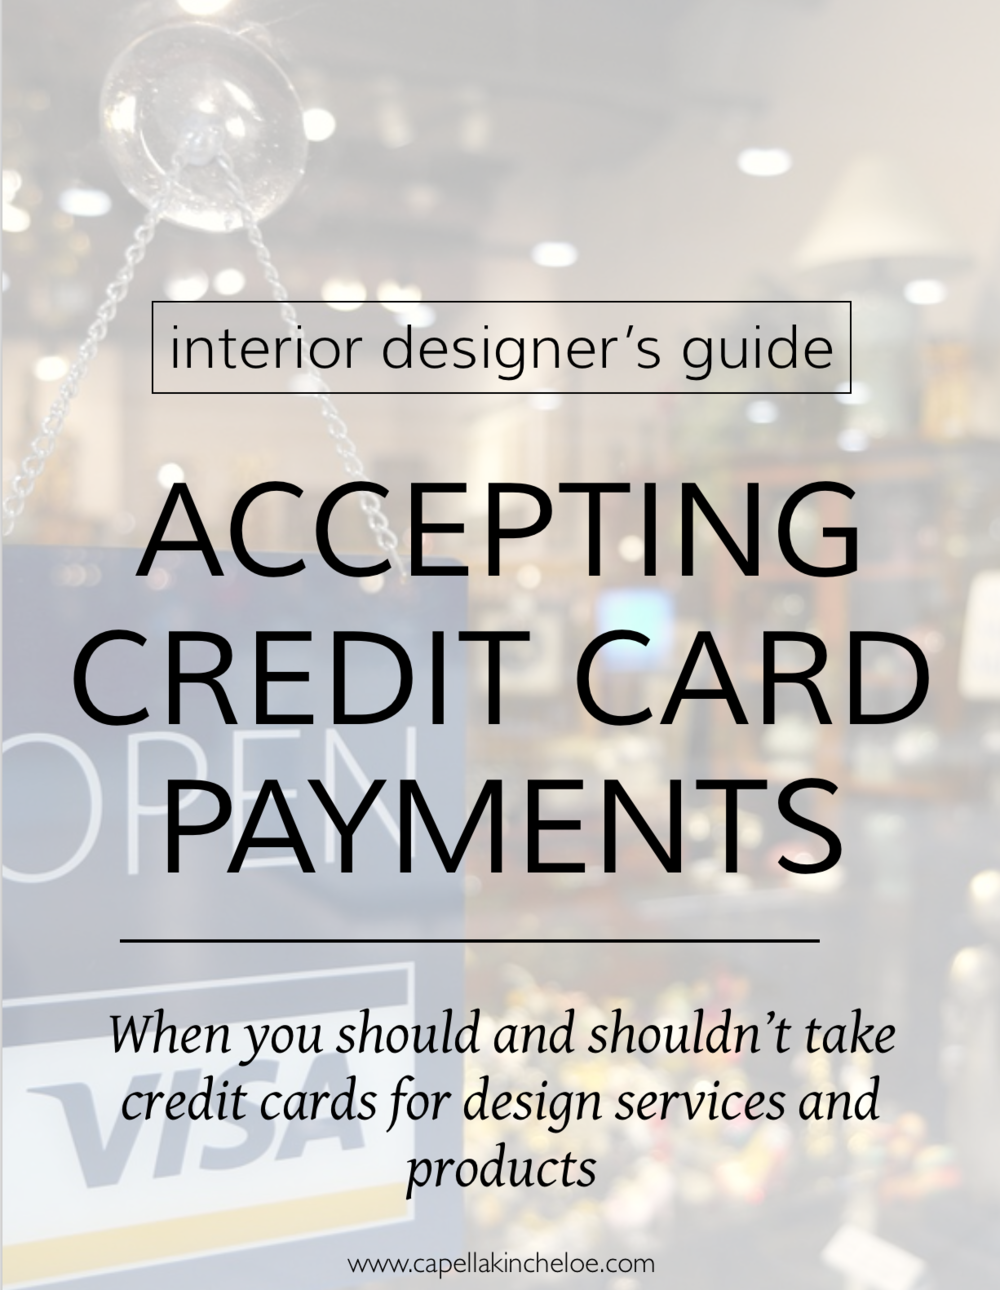 Deciding whether to take credit cards in your business is a critical business decision.  Learn how this can affect the running of an interior design business.